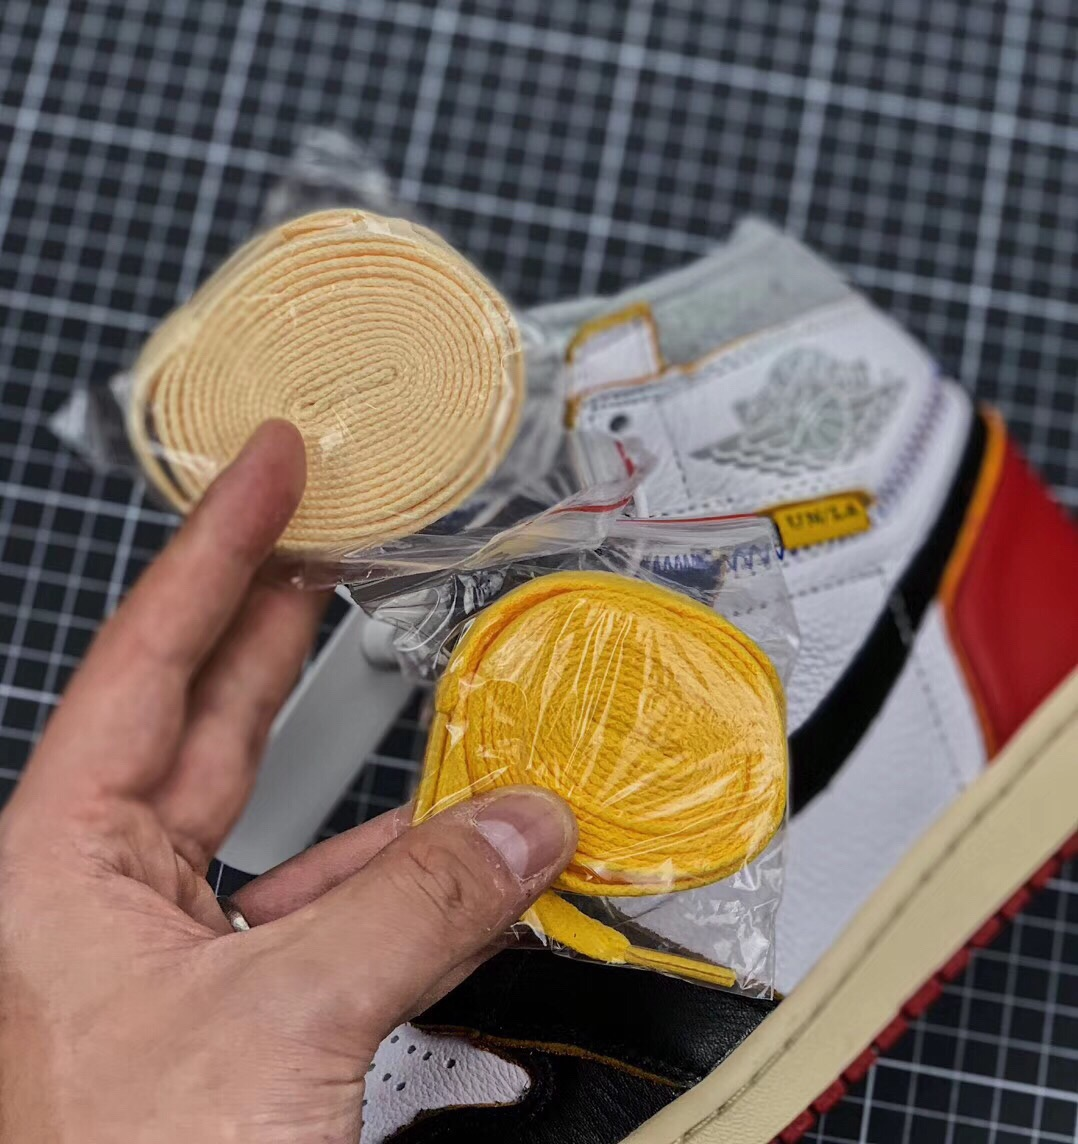 Authentic Union x Air Jordan 1 Retro High PK RNG